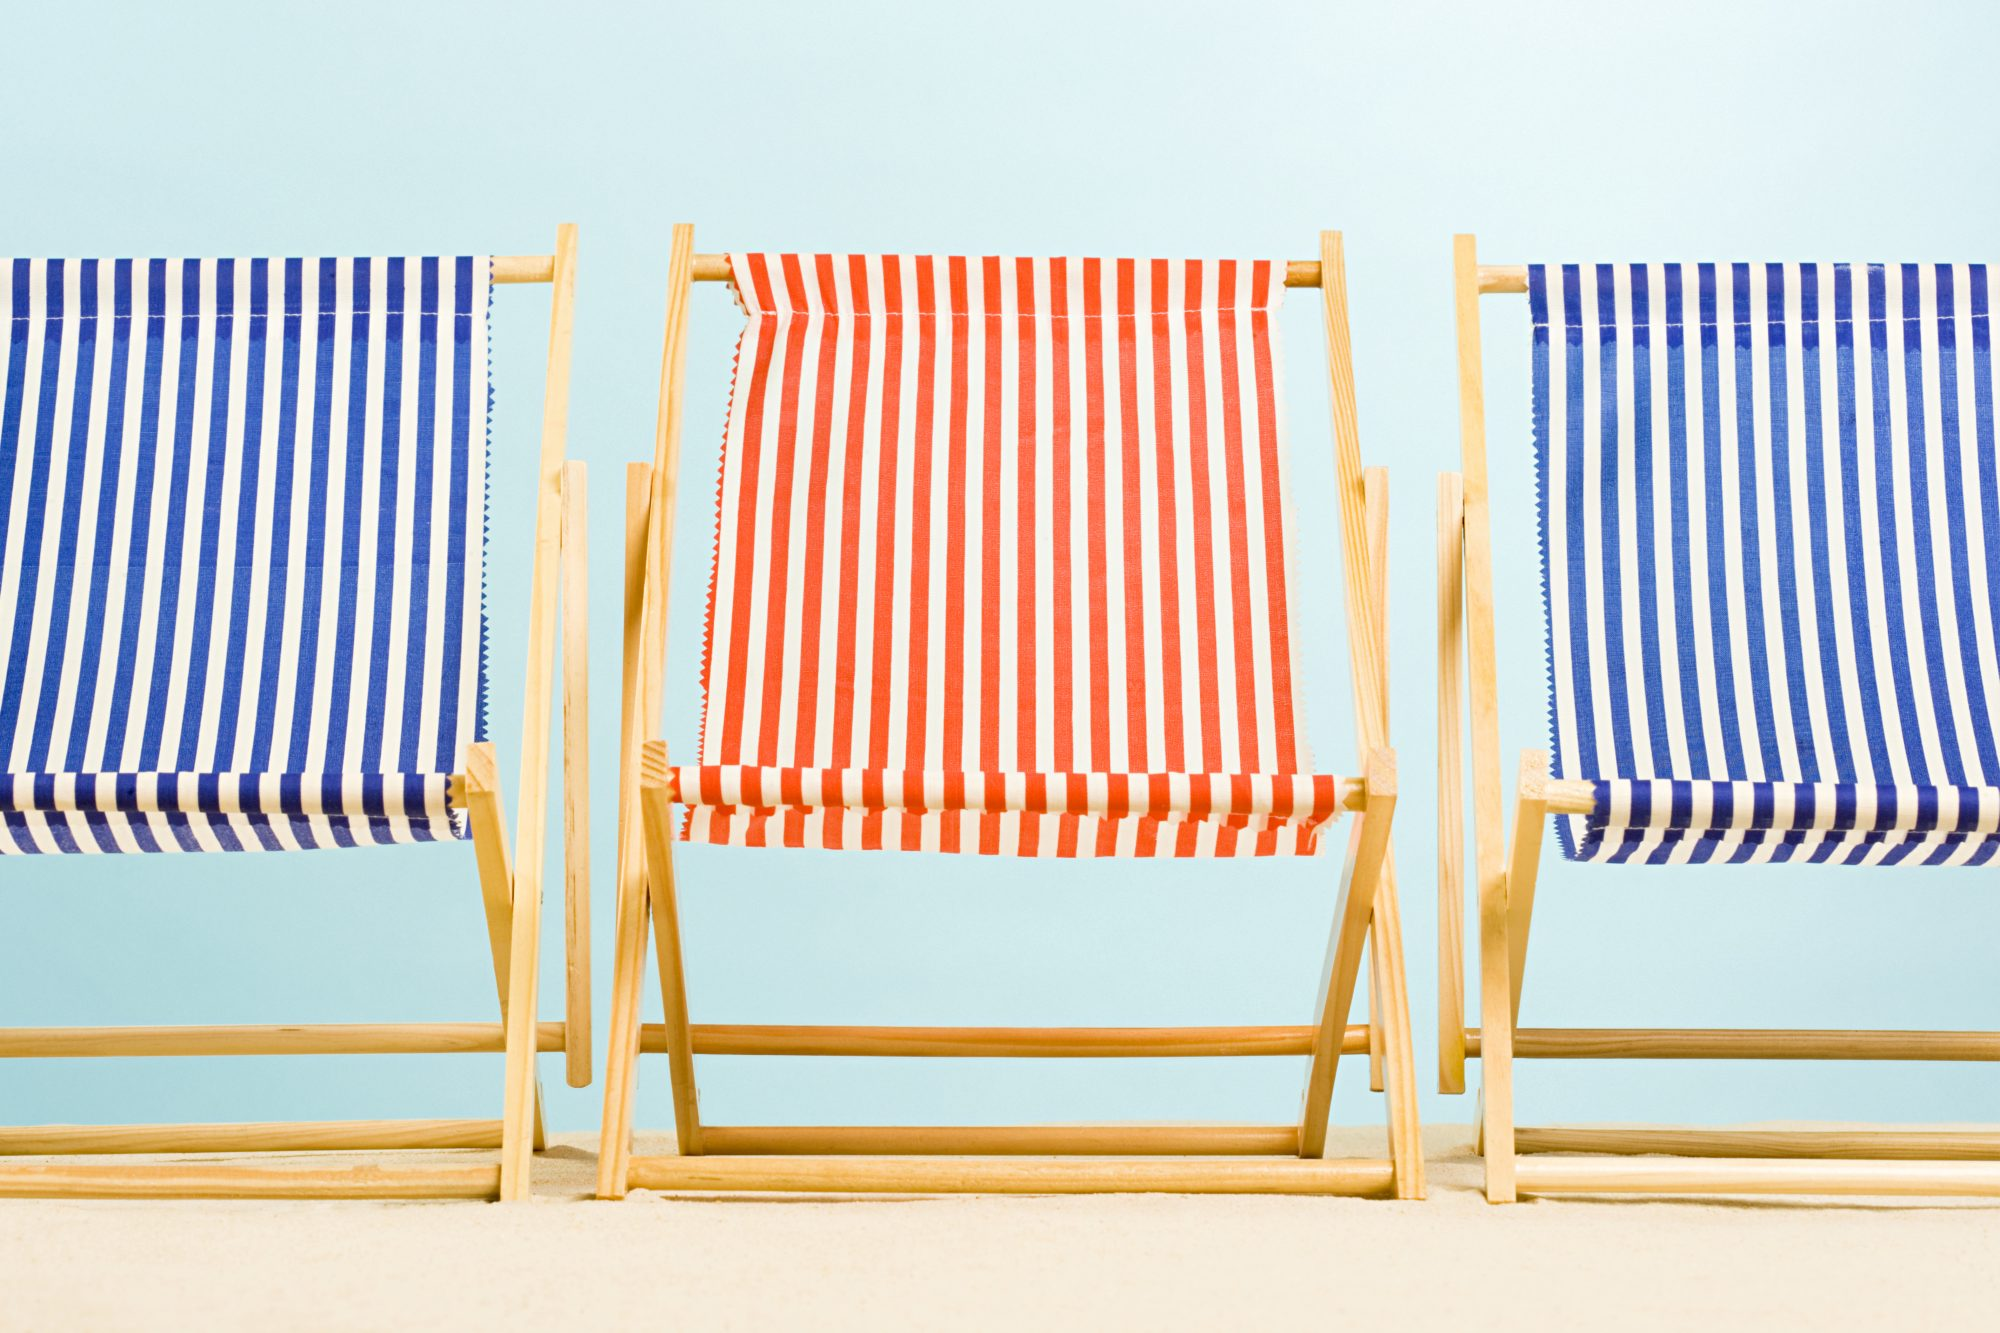 How to retire early - tips